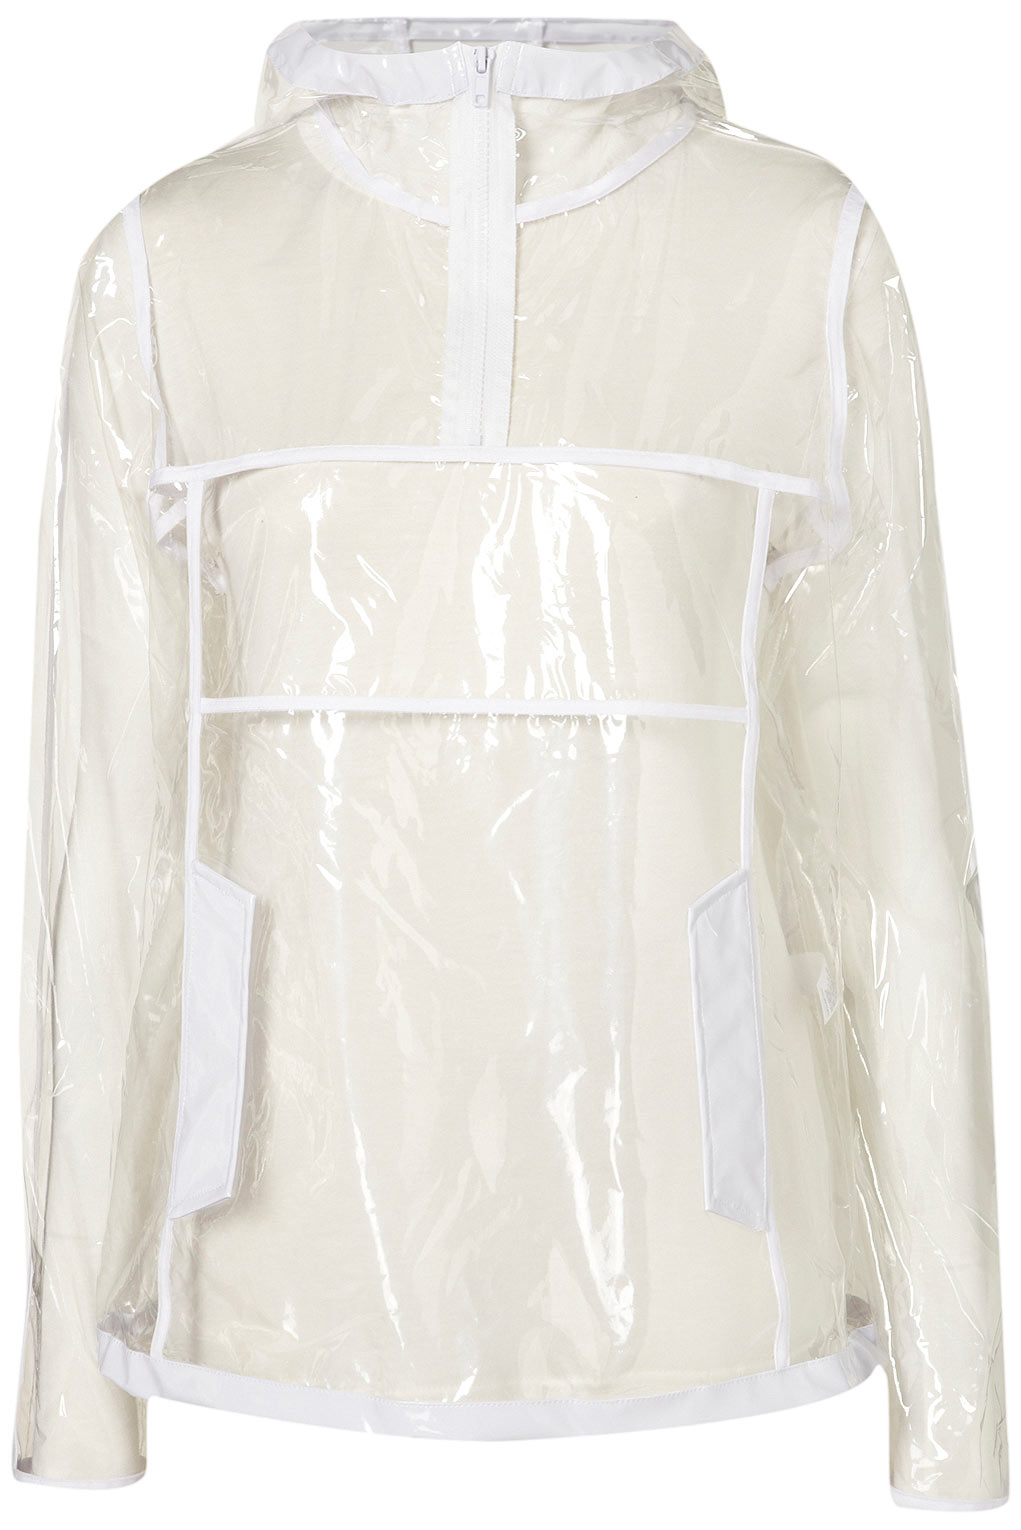 Lyst topshop clear plastic rain coat in natural for Clear plastic dress shirt bags